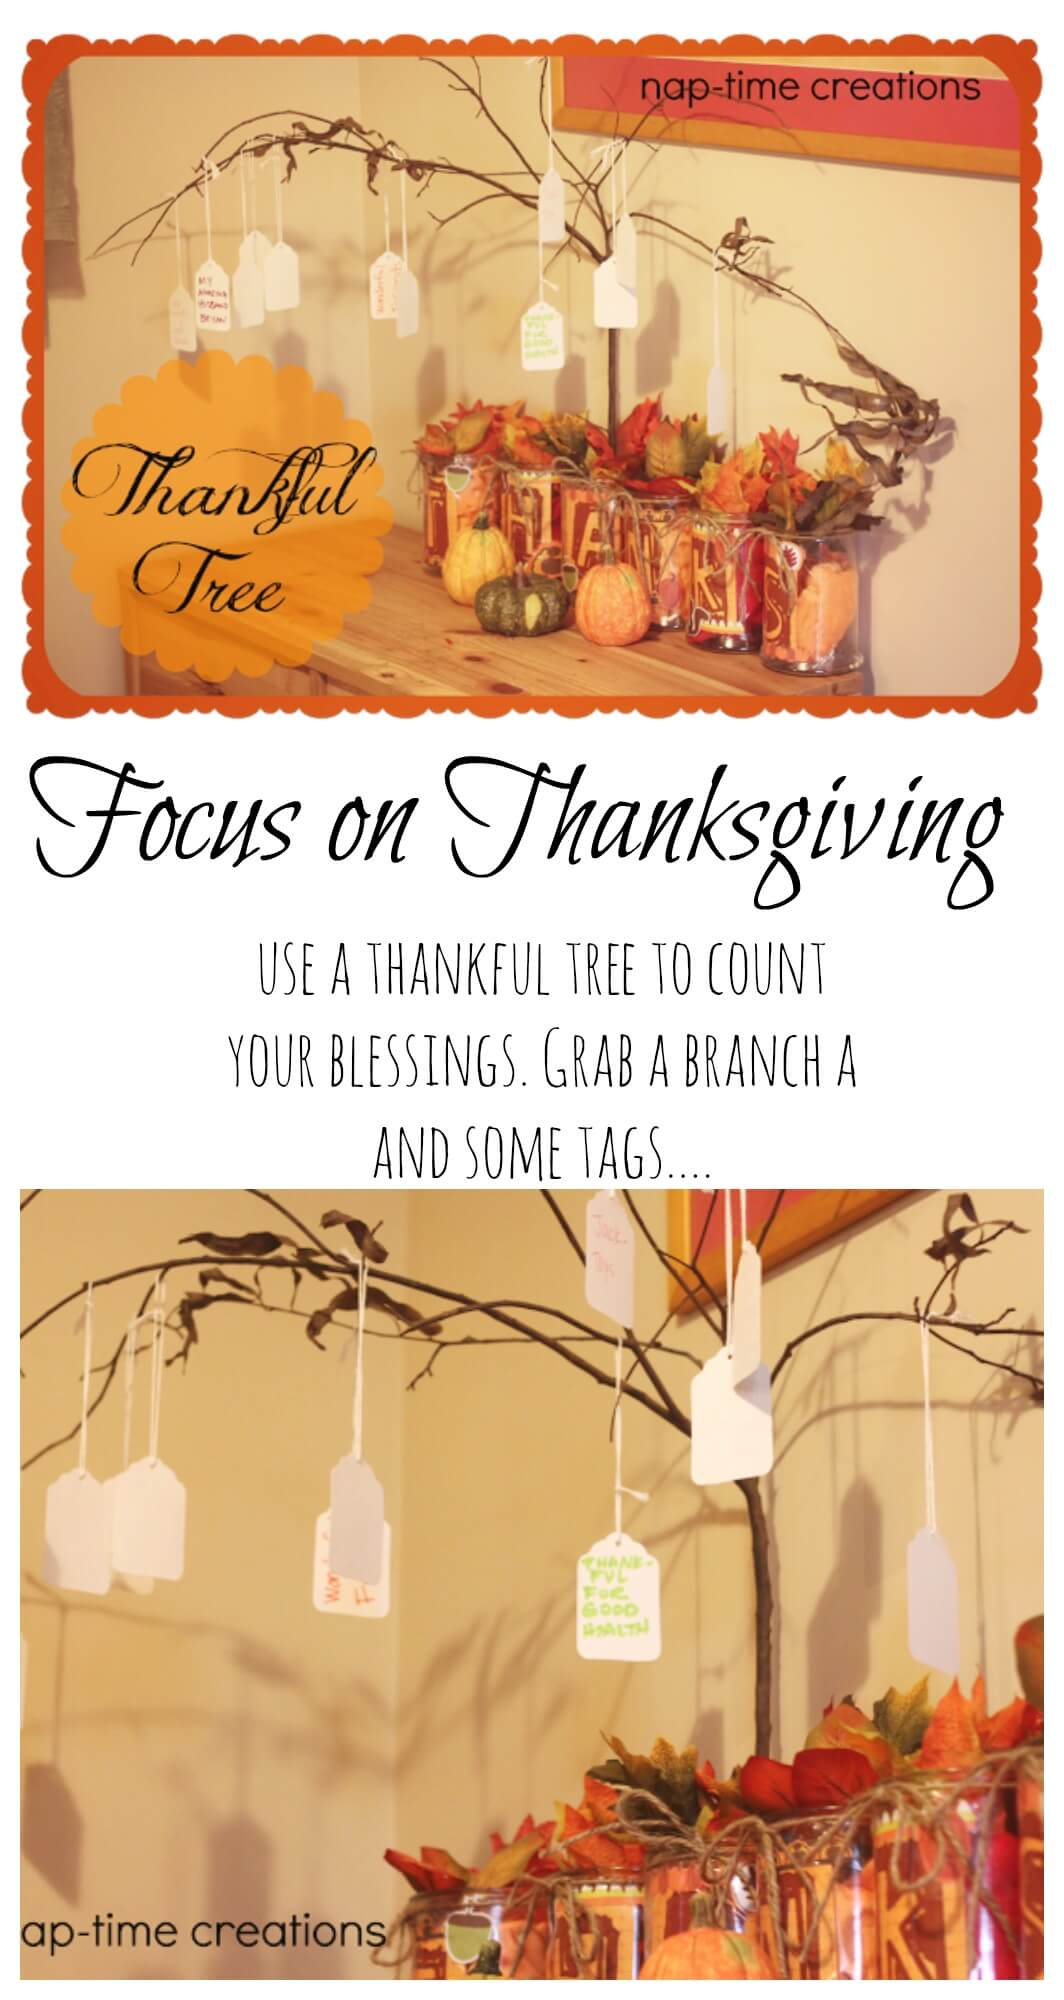 thanksgiving-tree-count-your-blessings-from-nap-time-creations